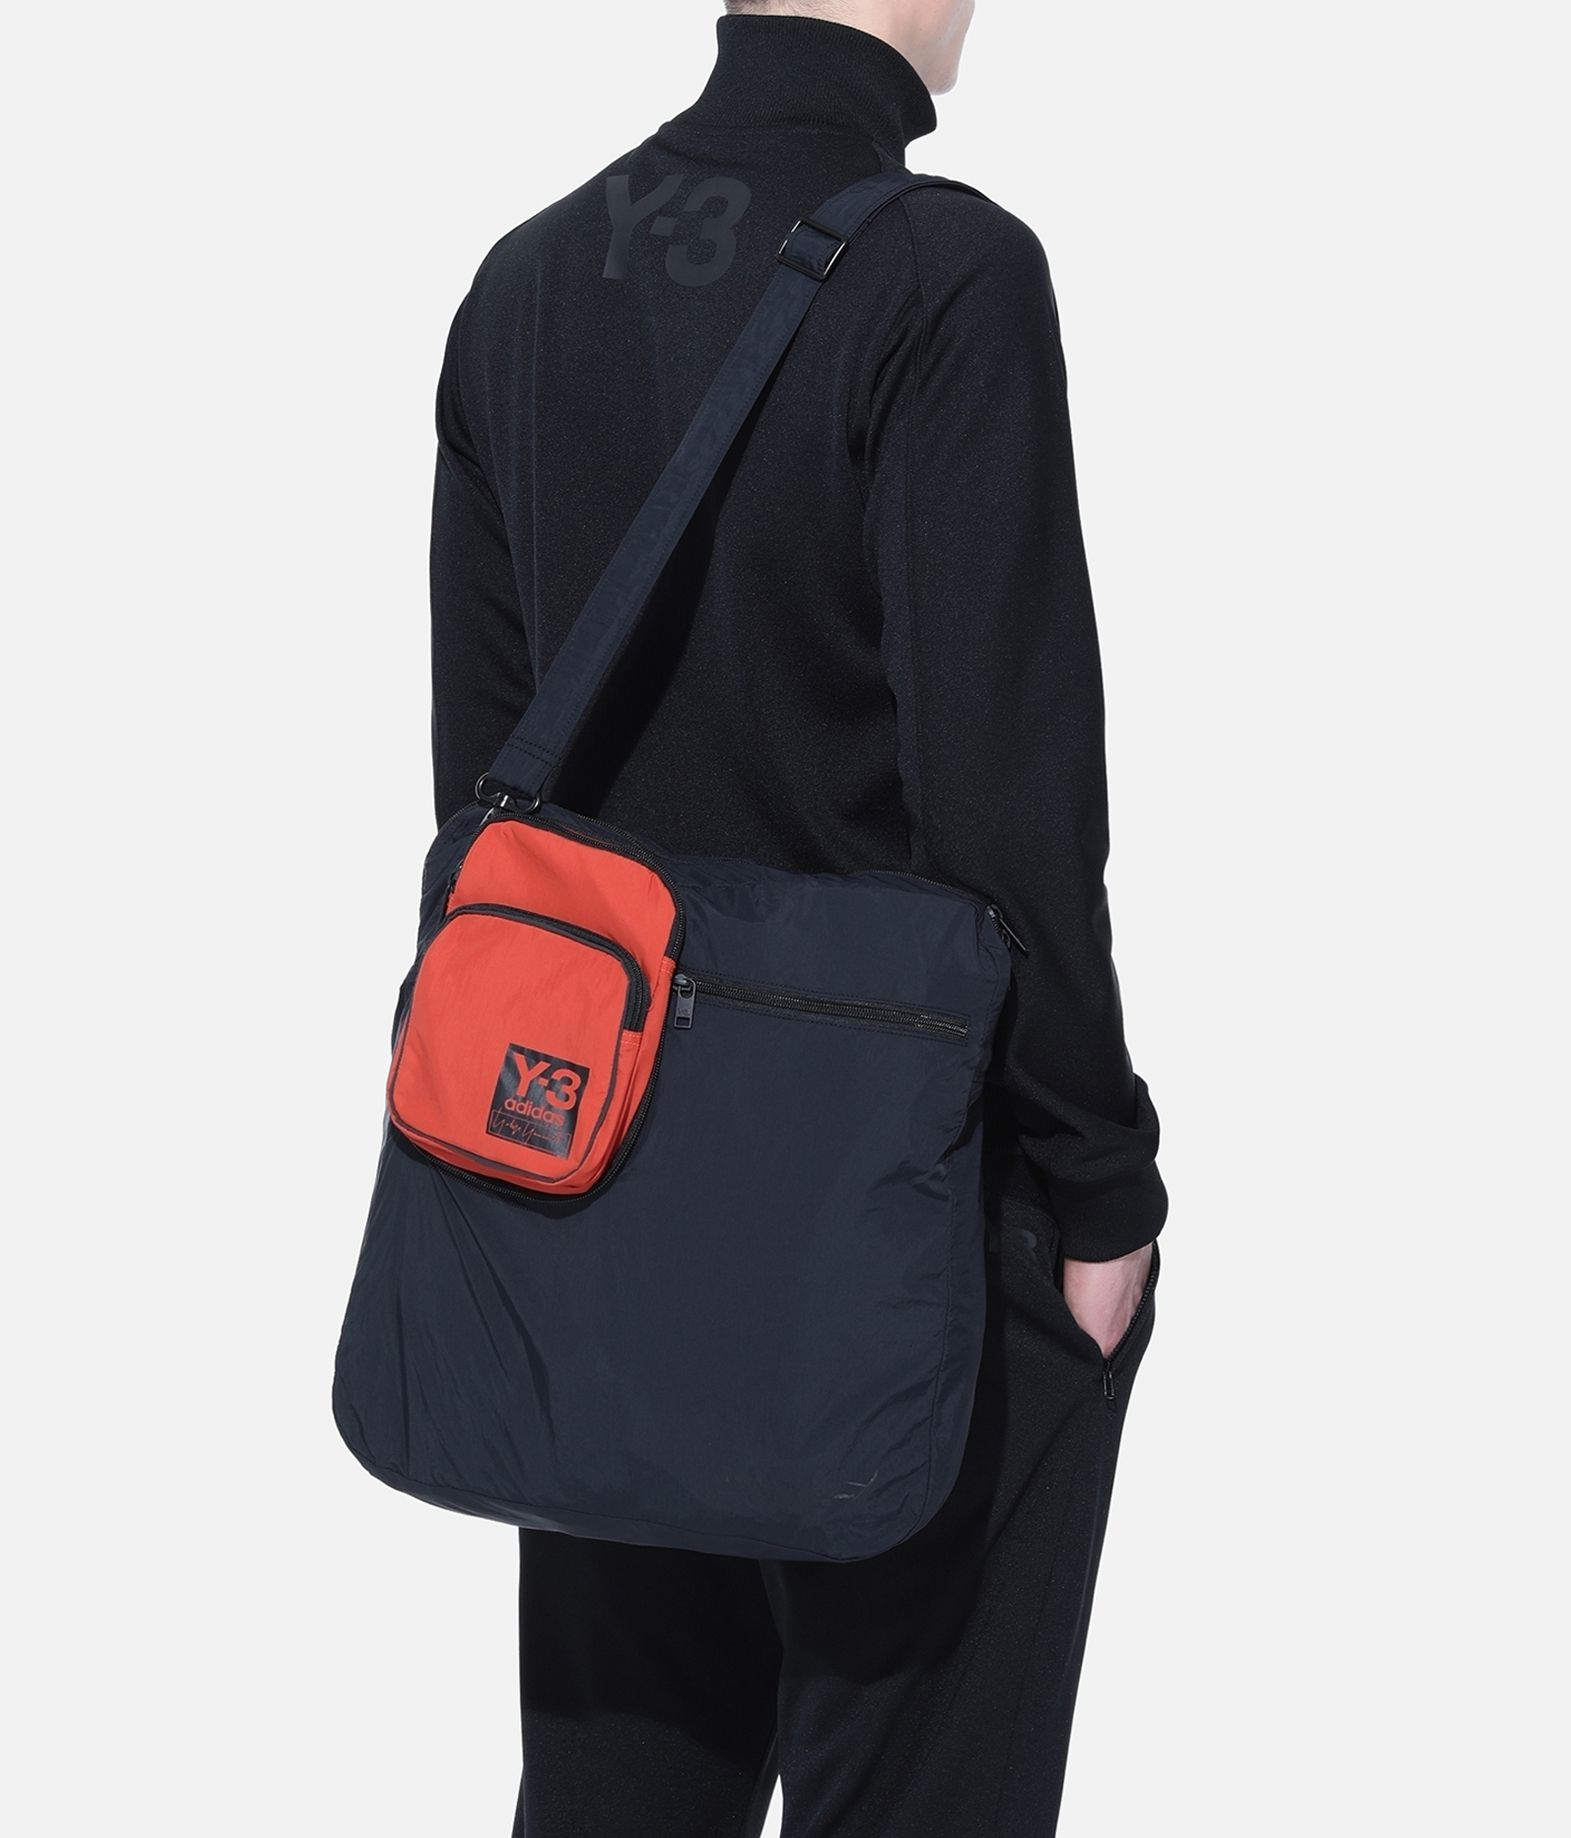 Y-3 Y-3 Packable Airliner Bag Shoulder bag E r